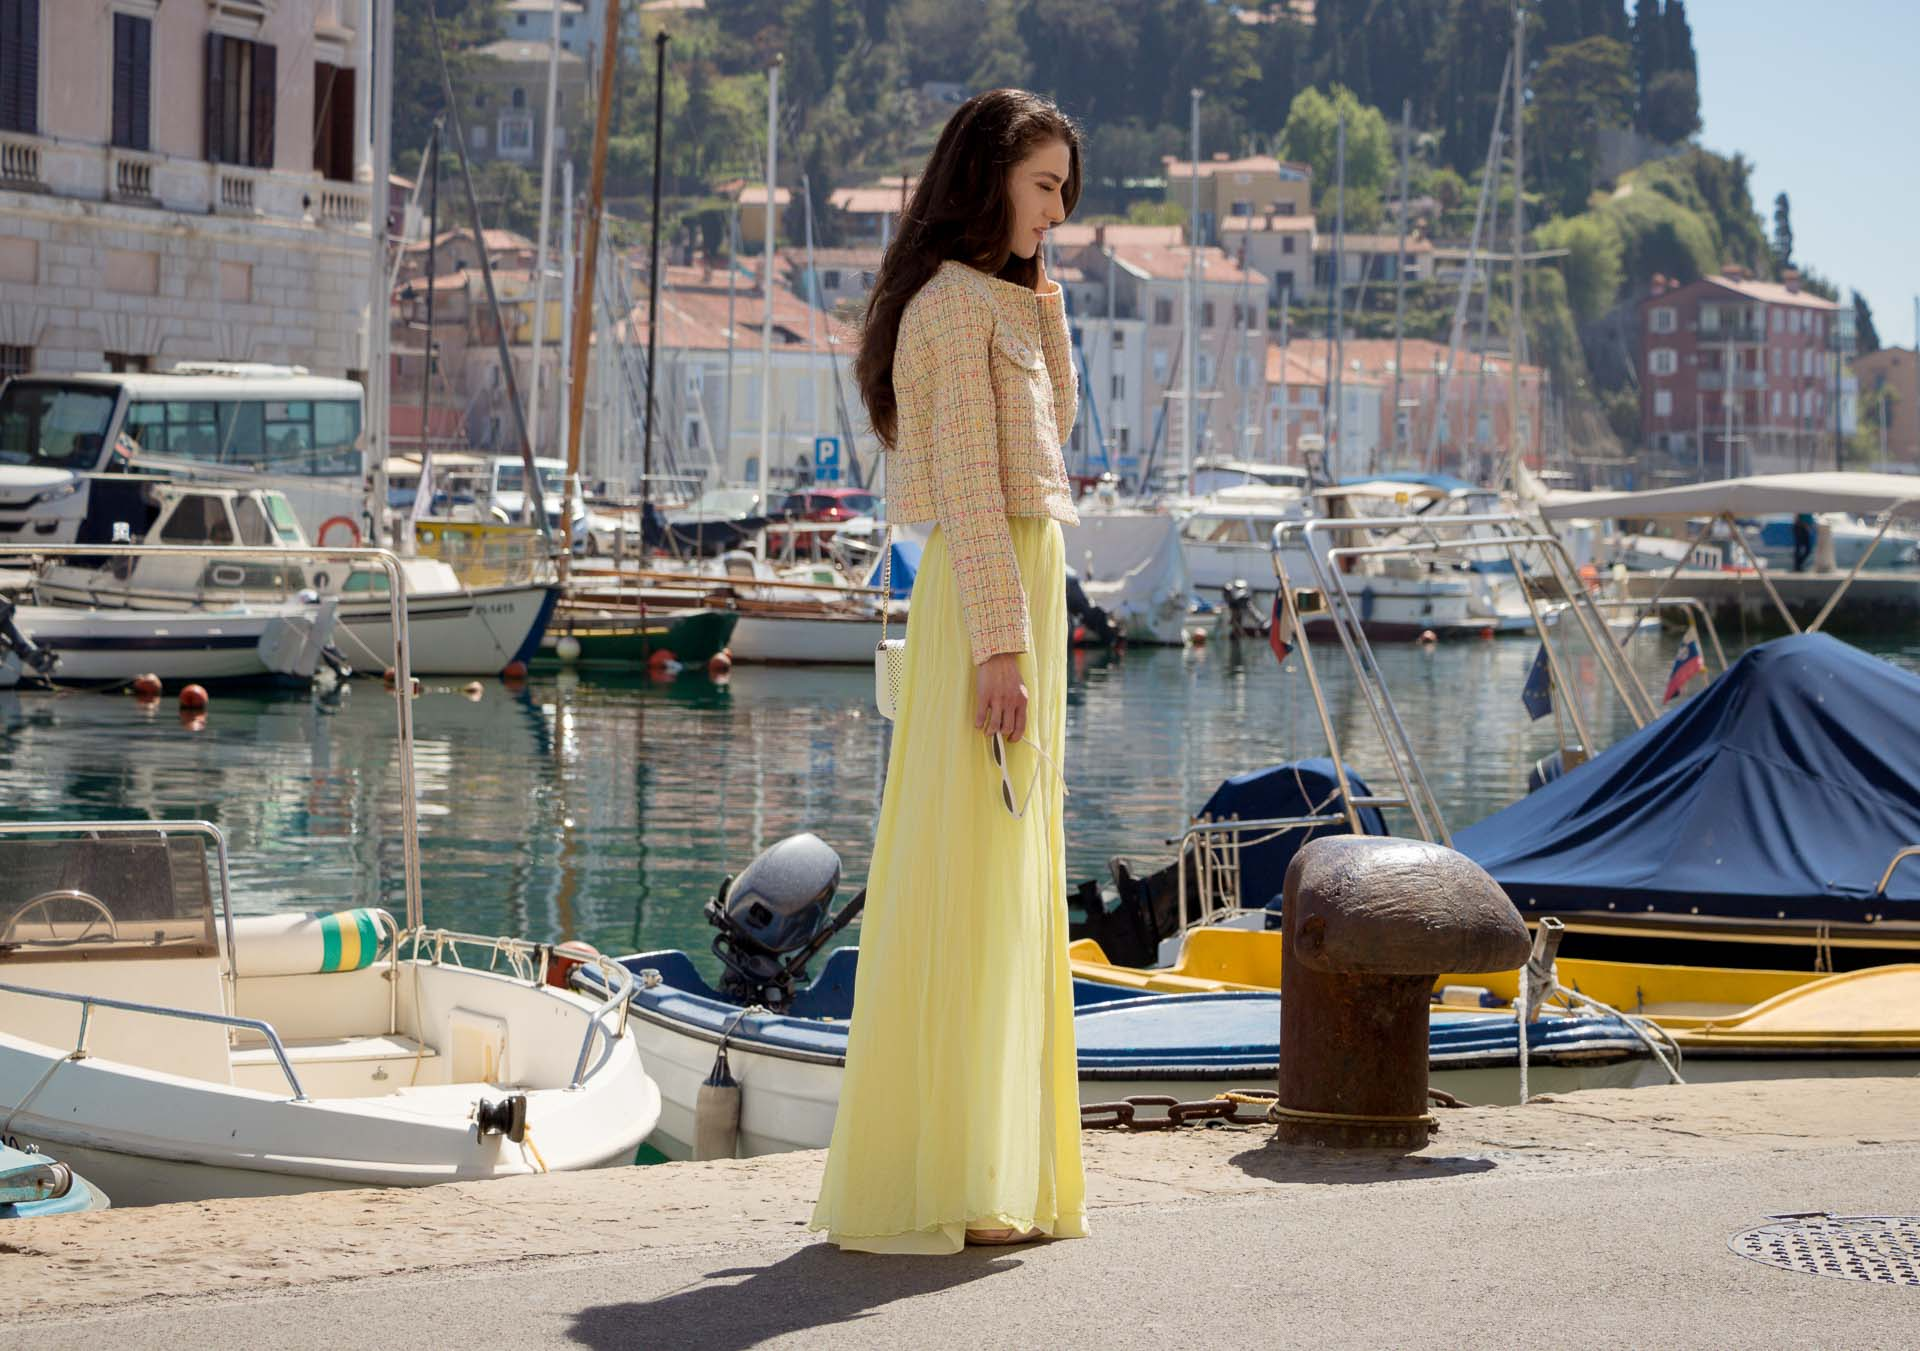 Veronika Lipar Fashion Blogger of Brunette from Wall Street wearing long yellow tulle skirt from Needle & Thread, short yellow tweed jacket from Storets, floral silk top, blush Gianvito Rossi plexi pumps, white shoulder bag, Le specs white cat eye sunglasses walking at the port in Venice